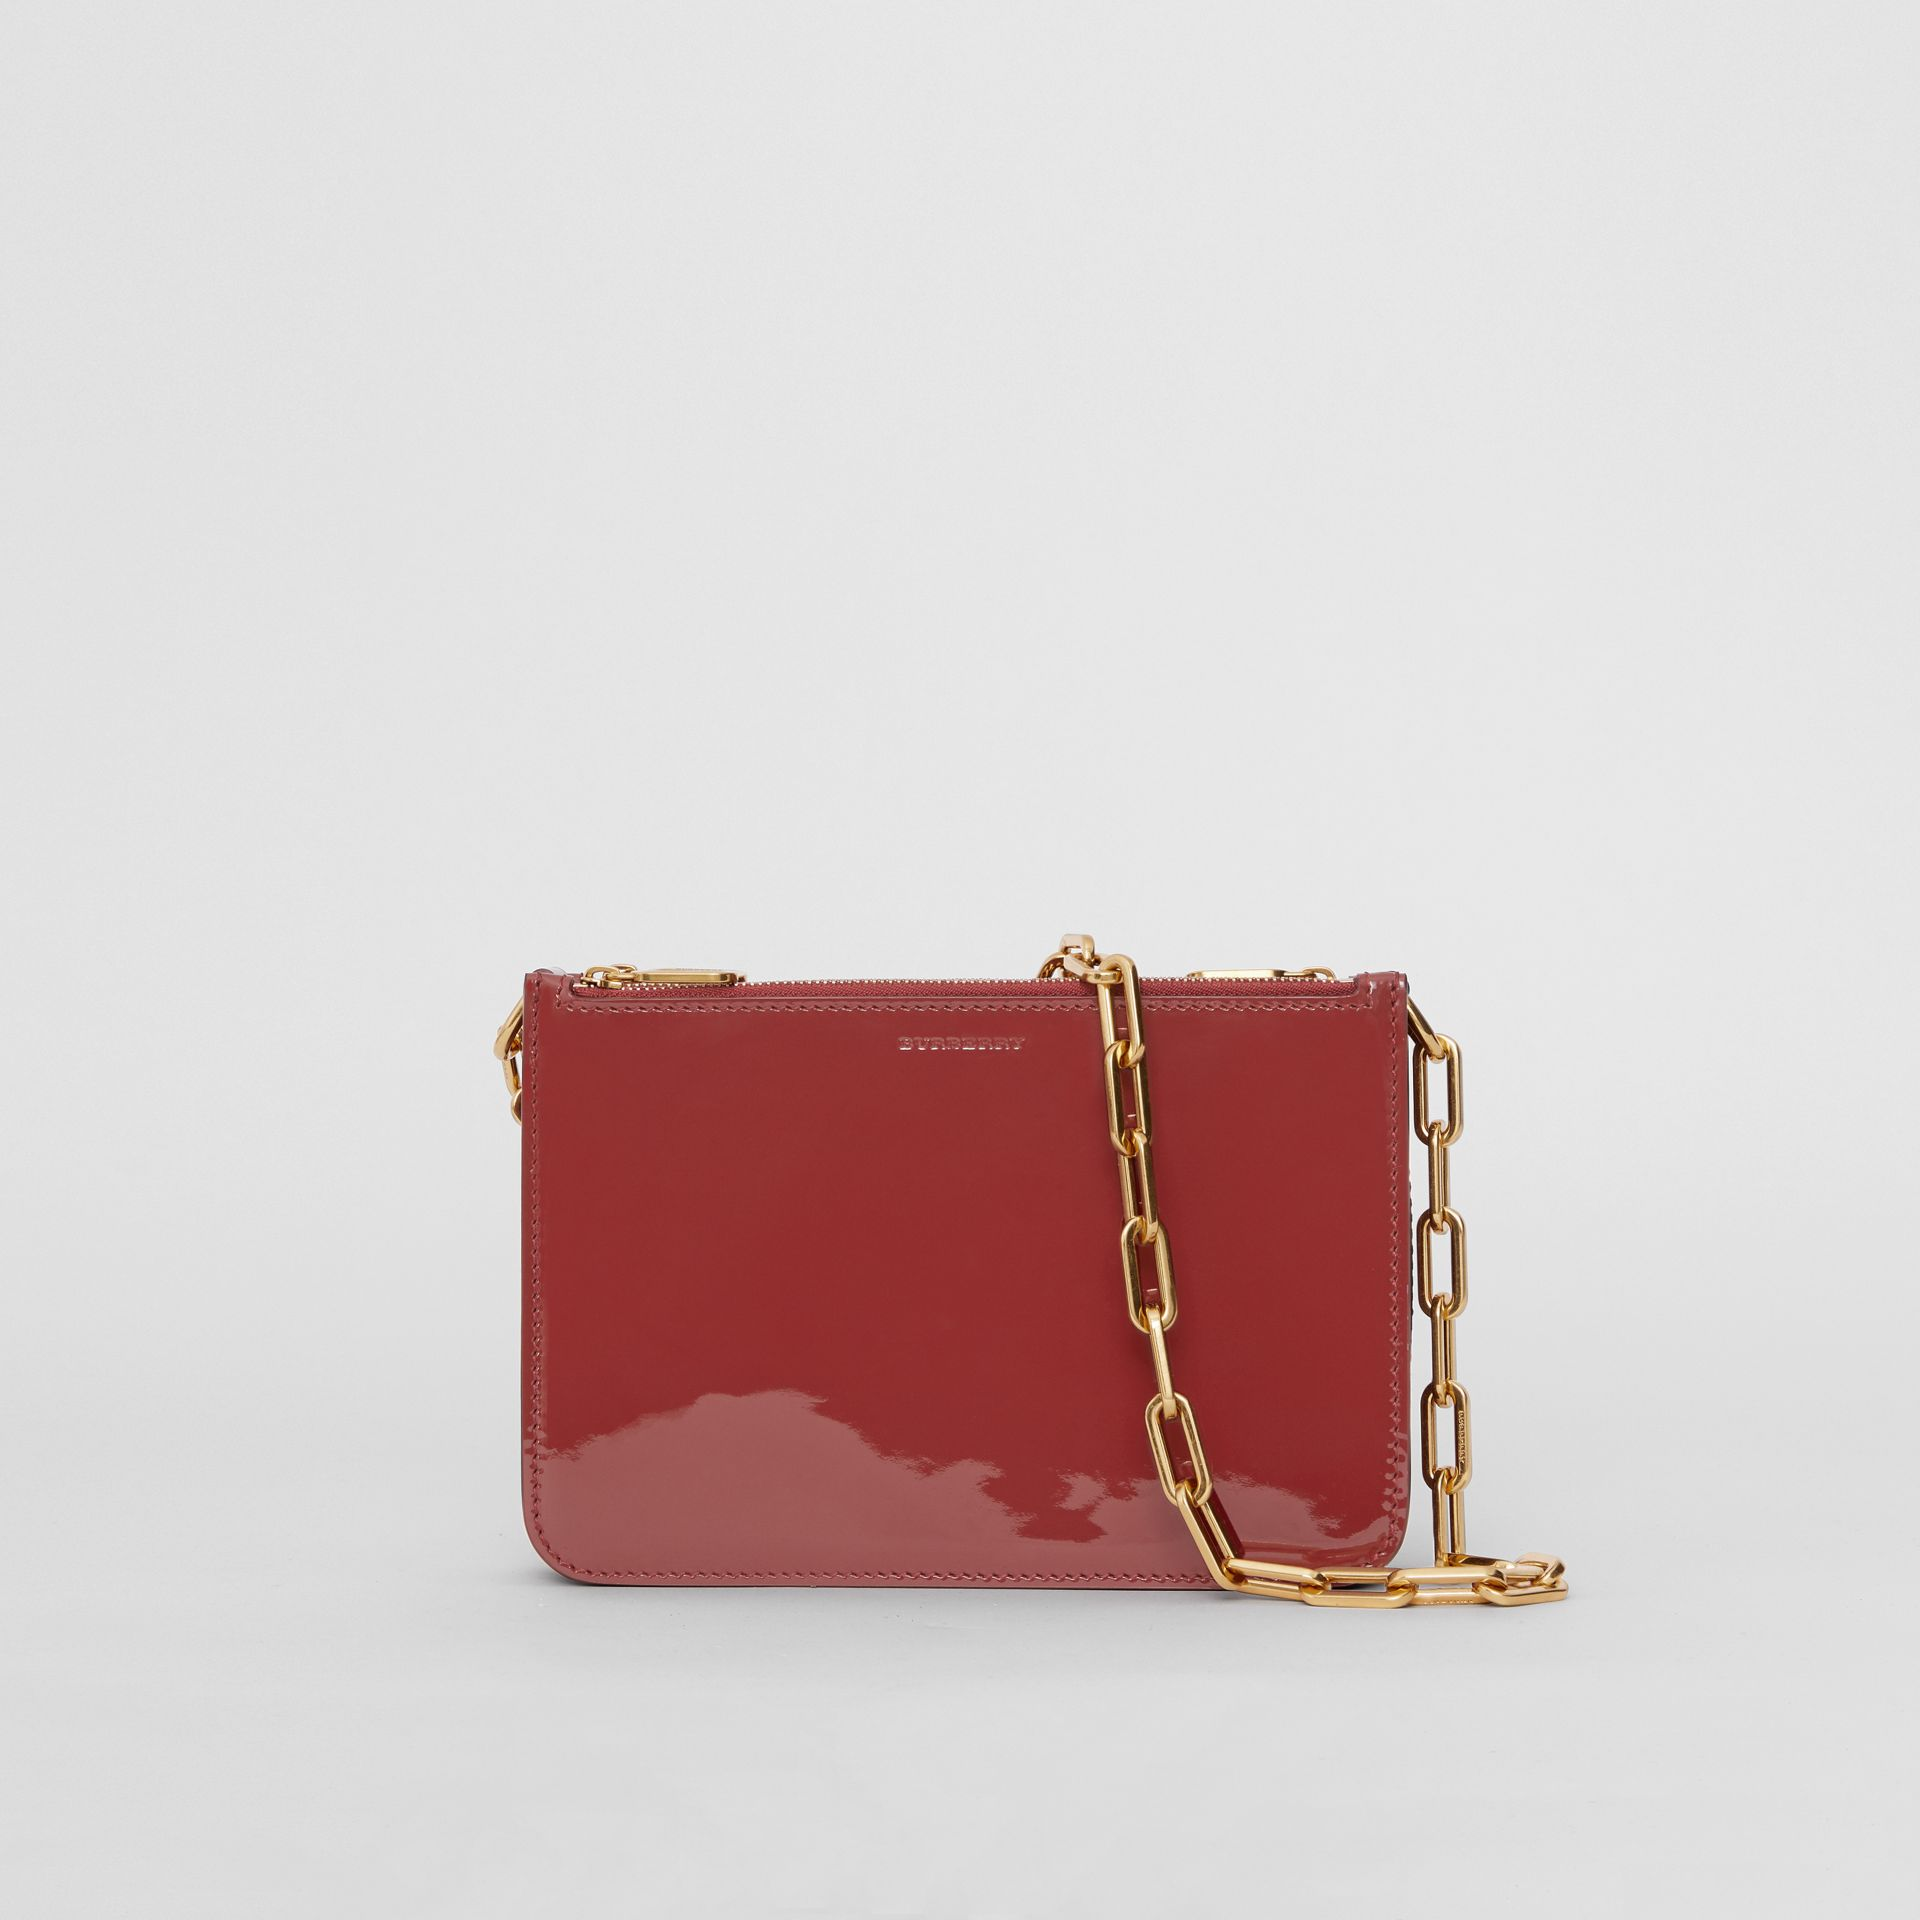 Triple Zip Patent Leather Crossbody Bag in Crimson - Women | Burberry Canada - gallery image 0